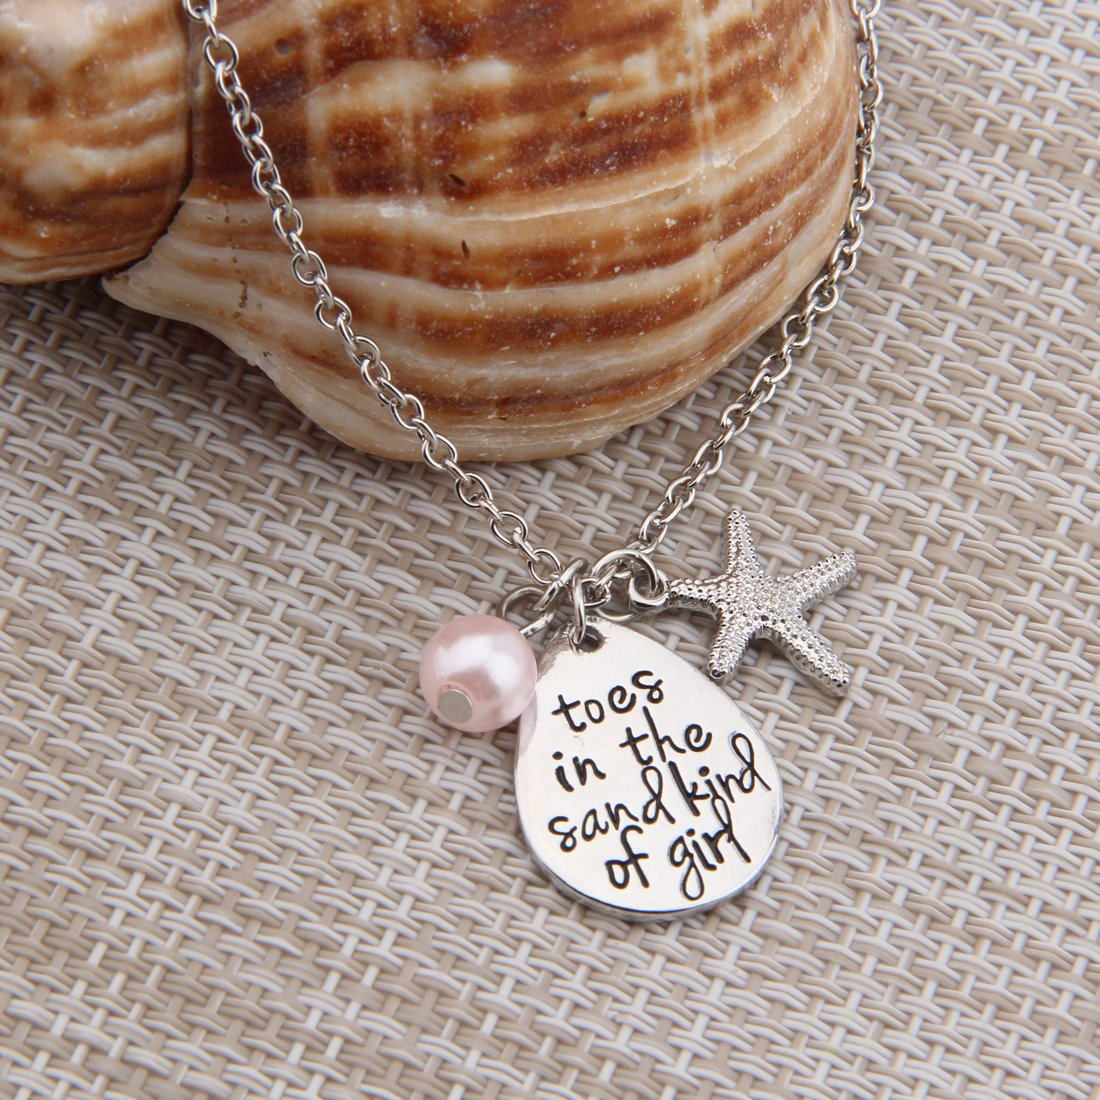 ENSIANTH Toes In The Sand Kind of Girl Engraved Charms Necklace Beach Jewelry with Starfish (waterdrop necklace) by ENSIANTH (Image #6)